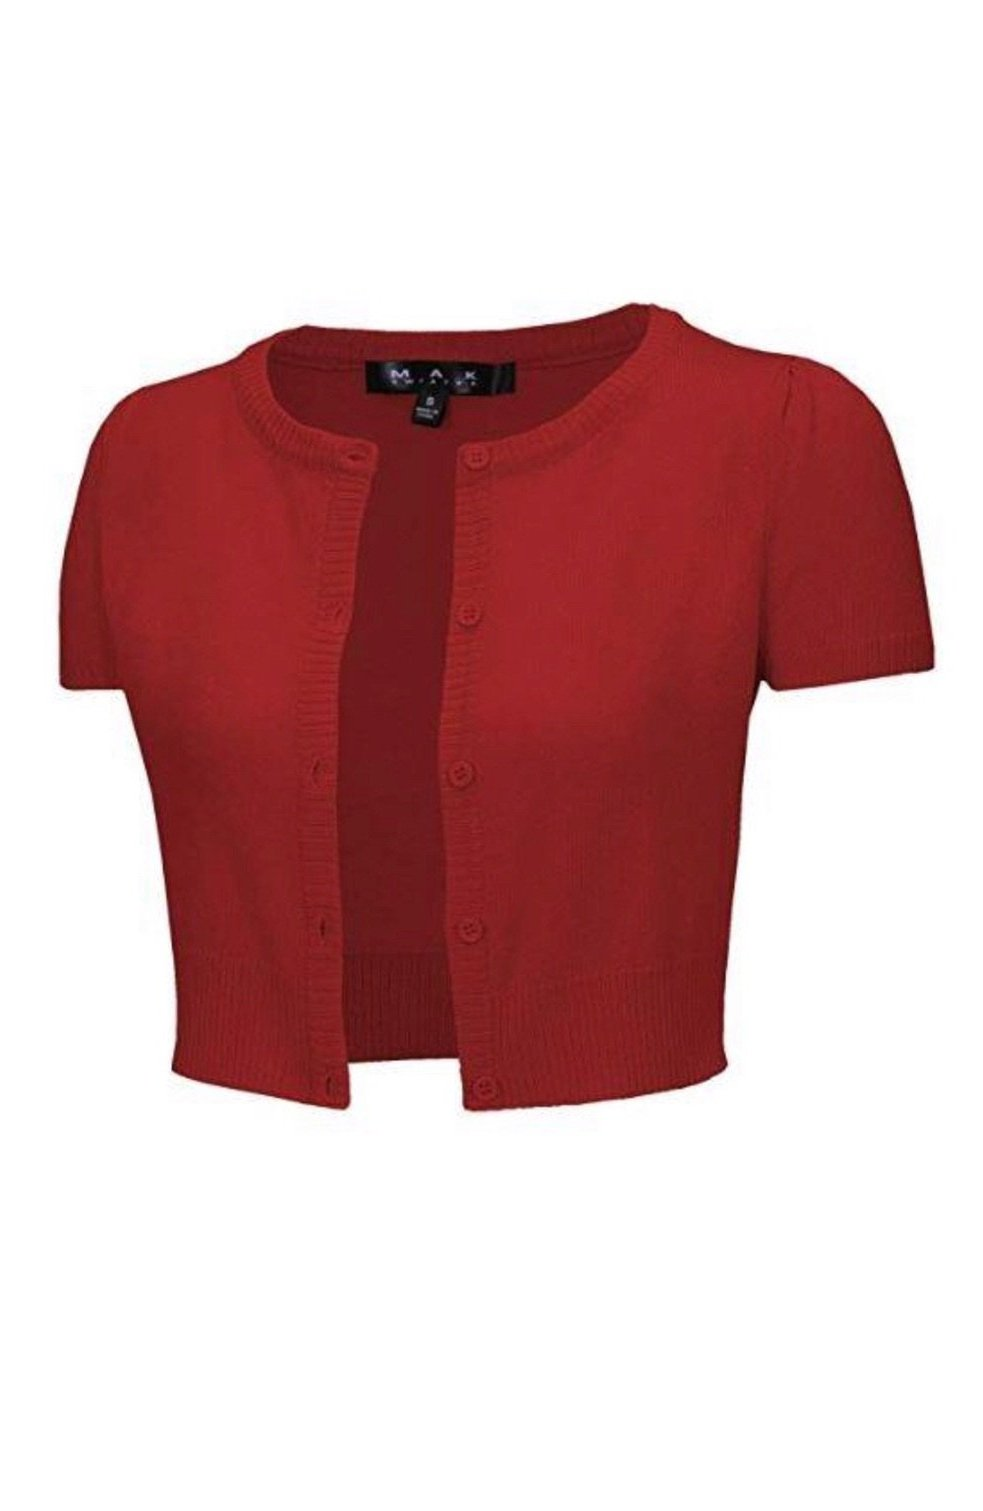 Short Sleeve Perfect Cropped Cardigan in Red by MAK